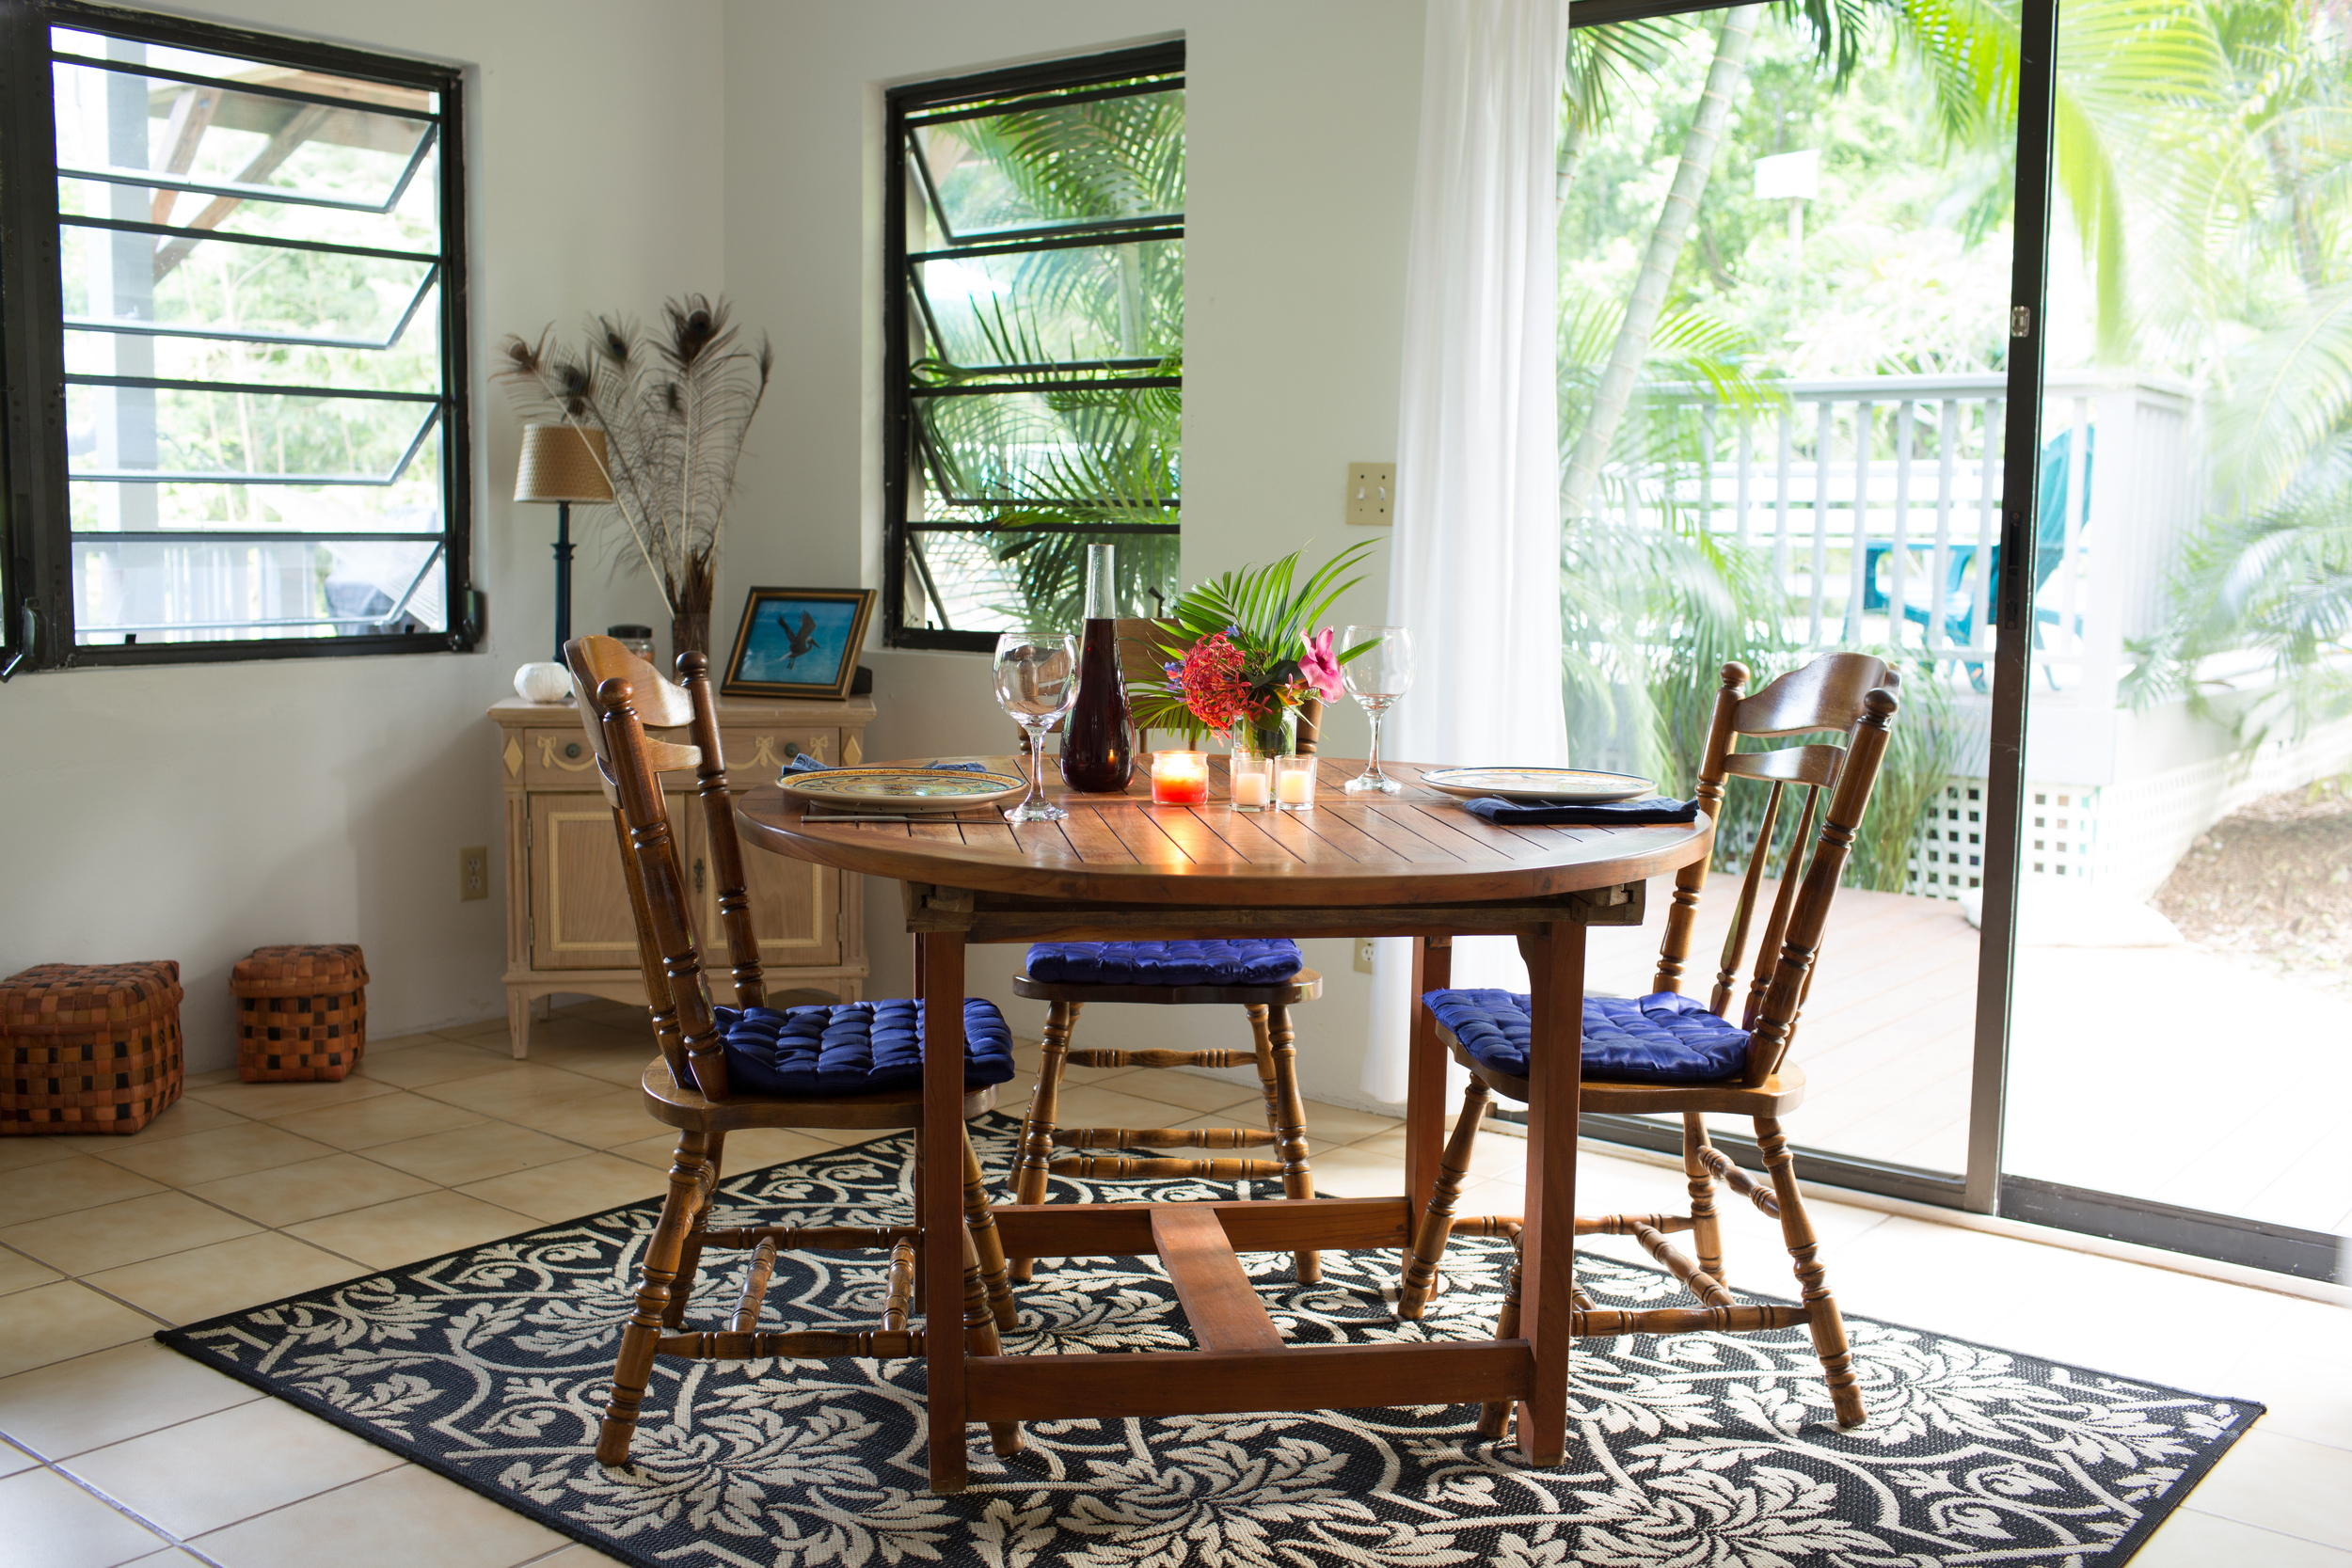 The dining table spills out to the wrap around covered deck with hammock strung poolside, gas grill and comfy shaded seating for reading